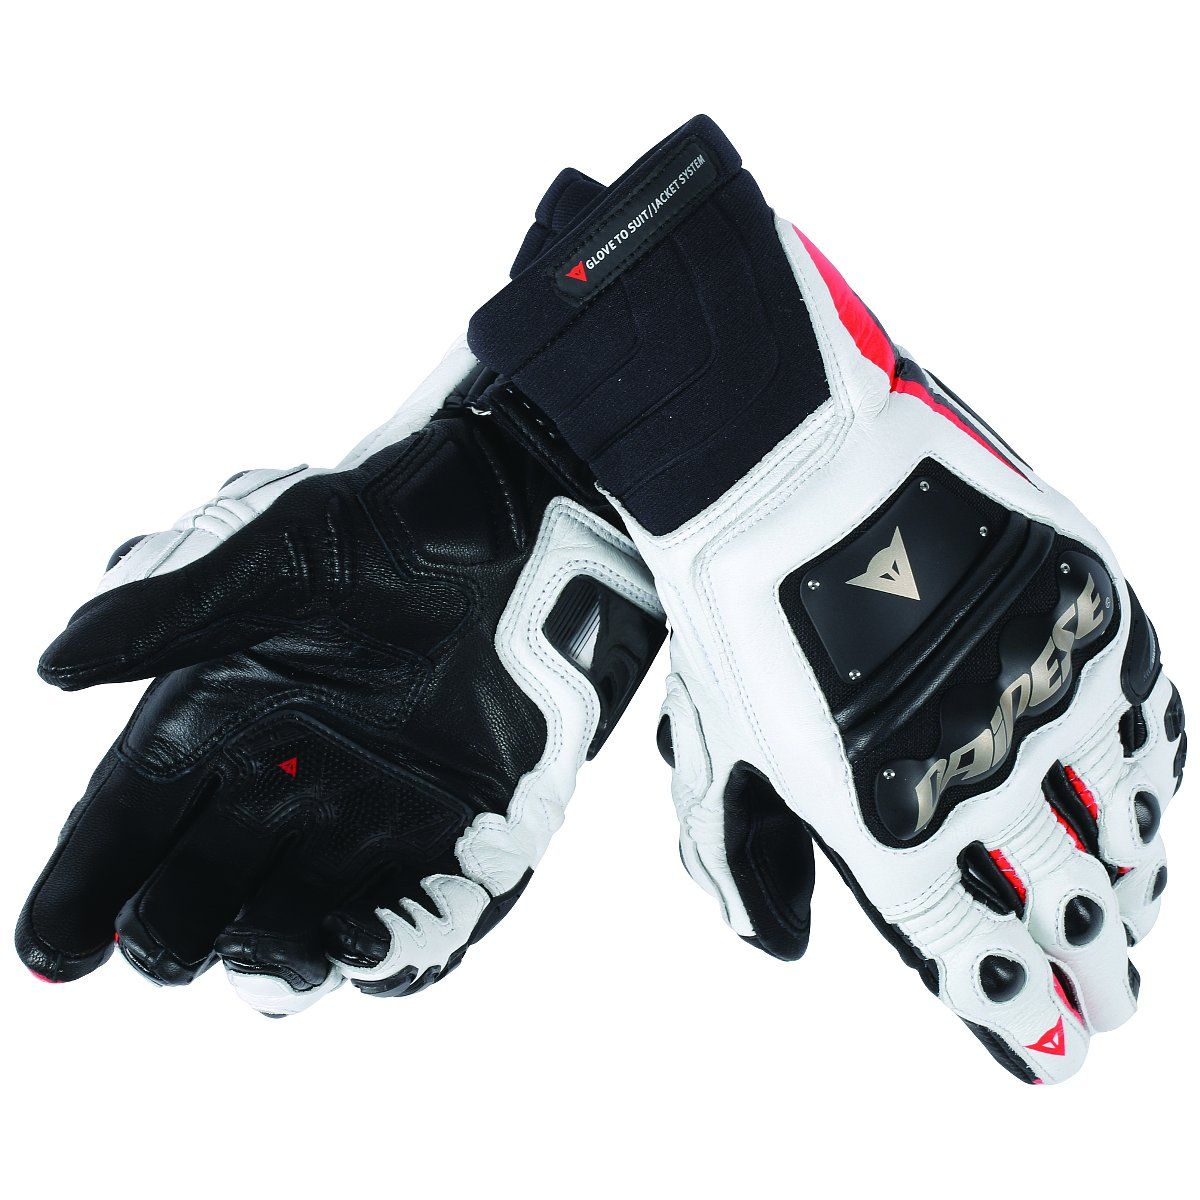 Motorcycle gloves san francisco - Dainese Race Pro In Gloves